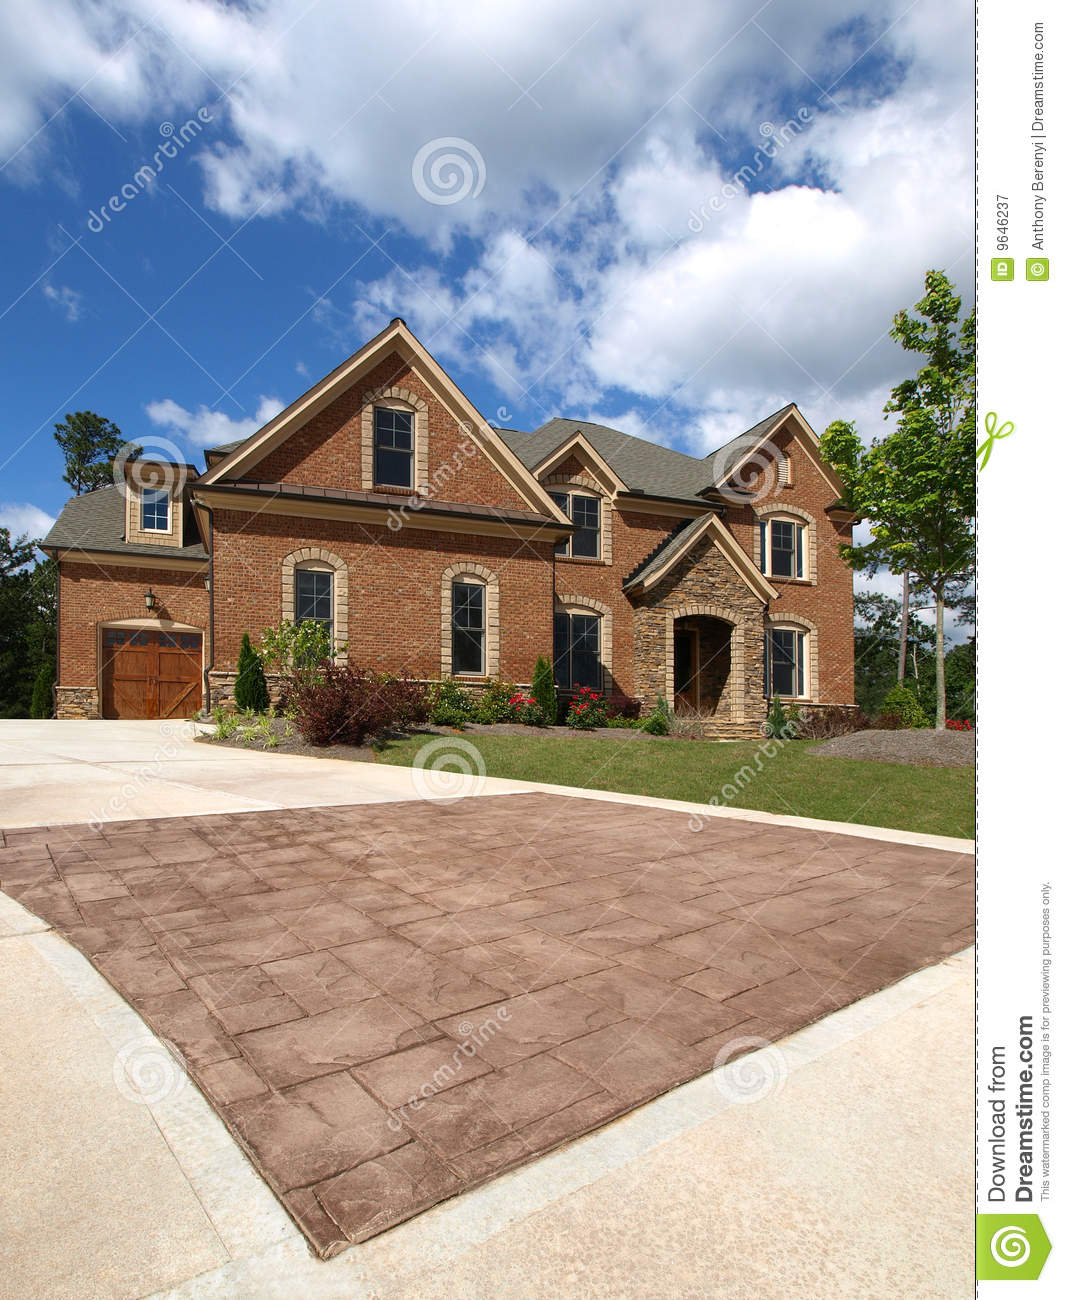 Luxury Marble Exterior House Exterior Designs: Luxury Model Home Exterior Stone Driveway Stock Image